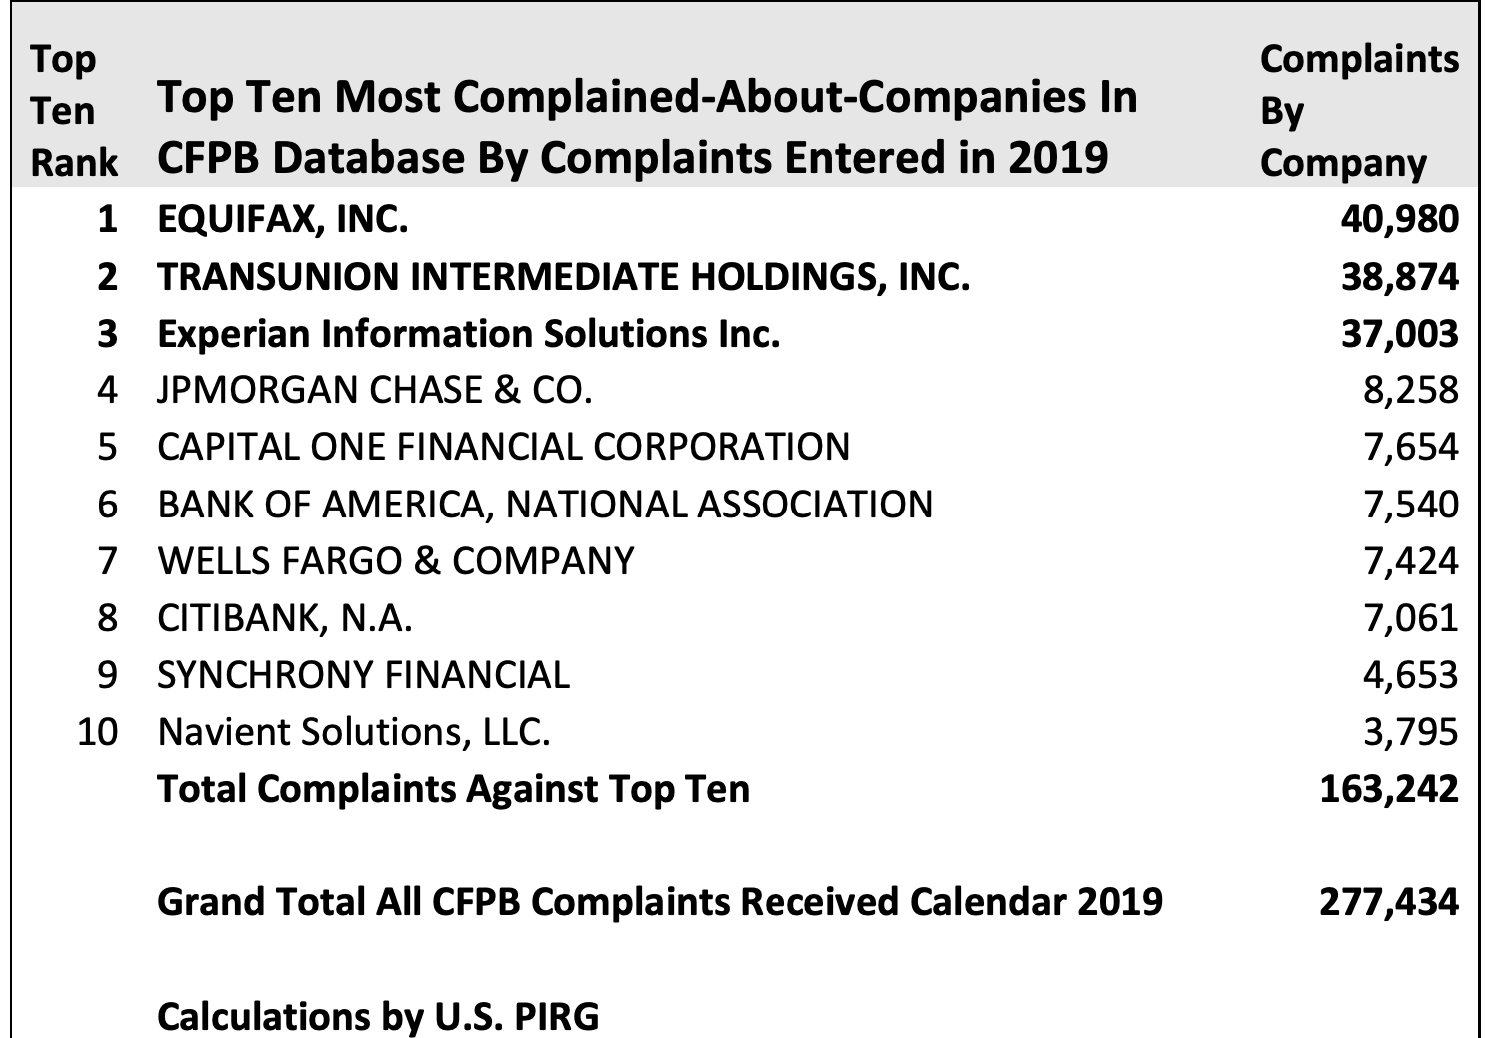 CFPB: Top Ten Complained About Companies In 2019